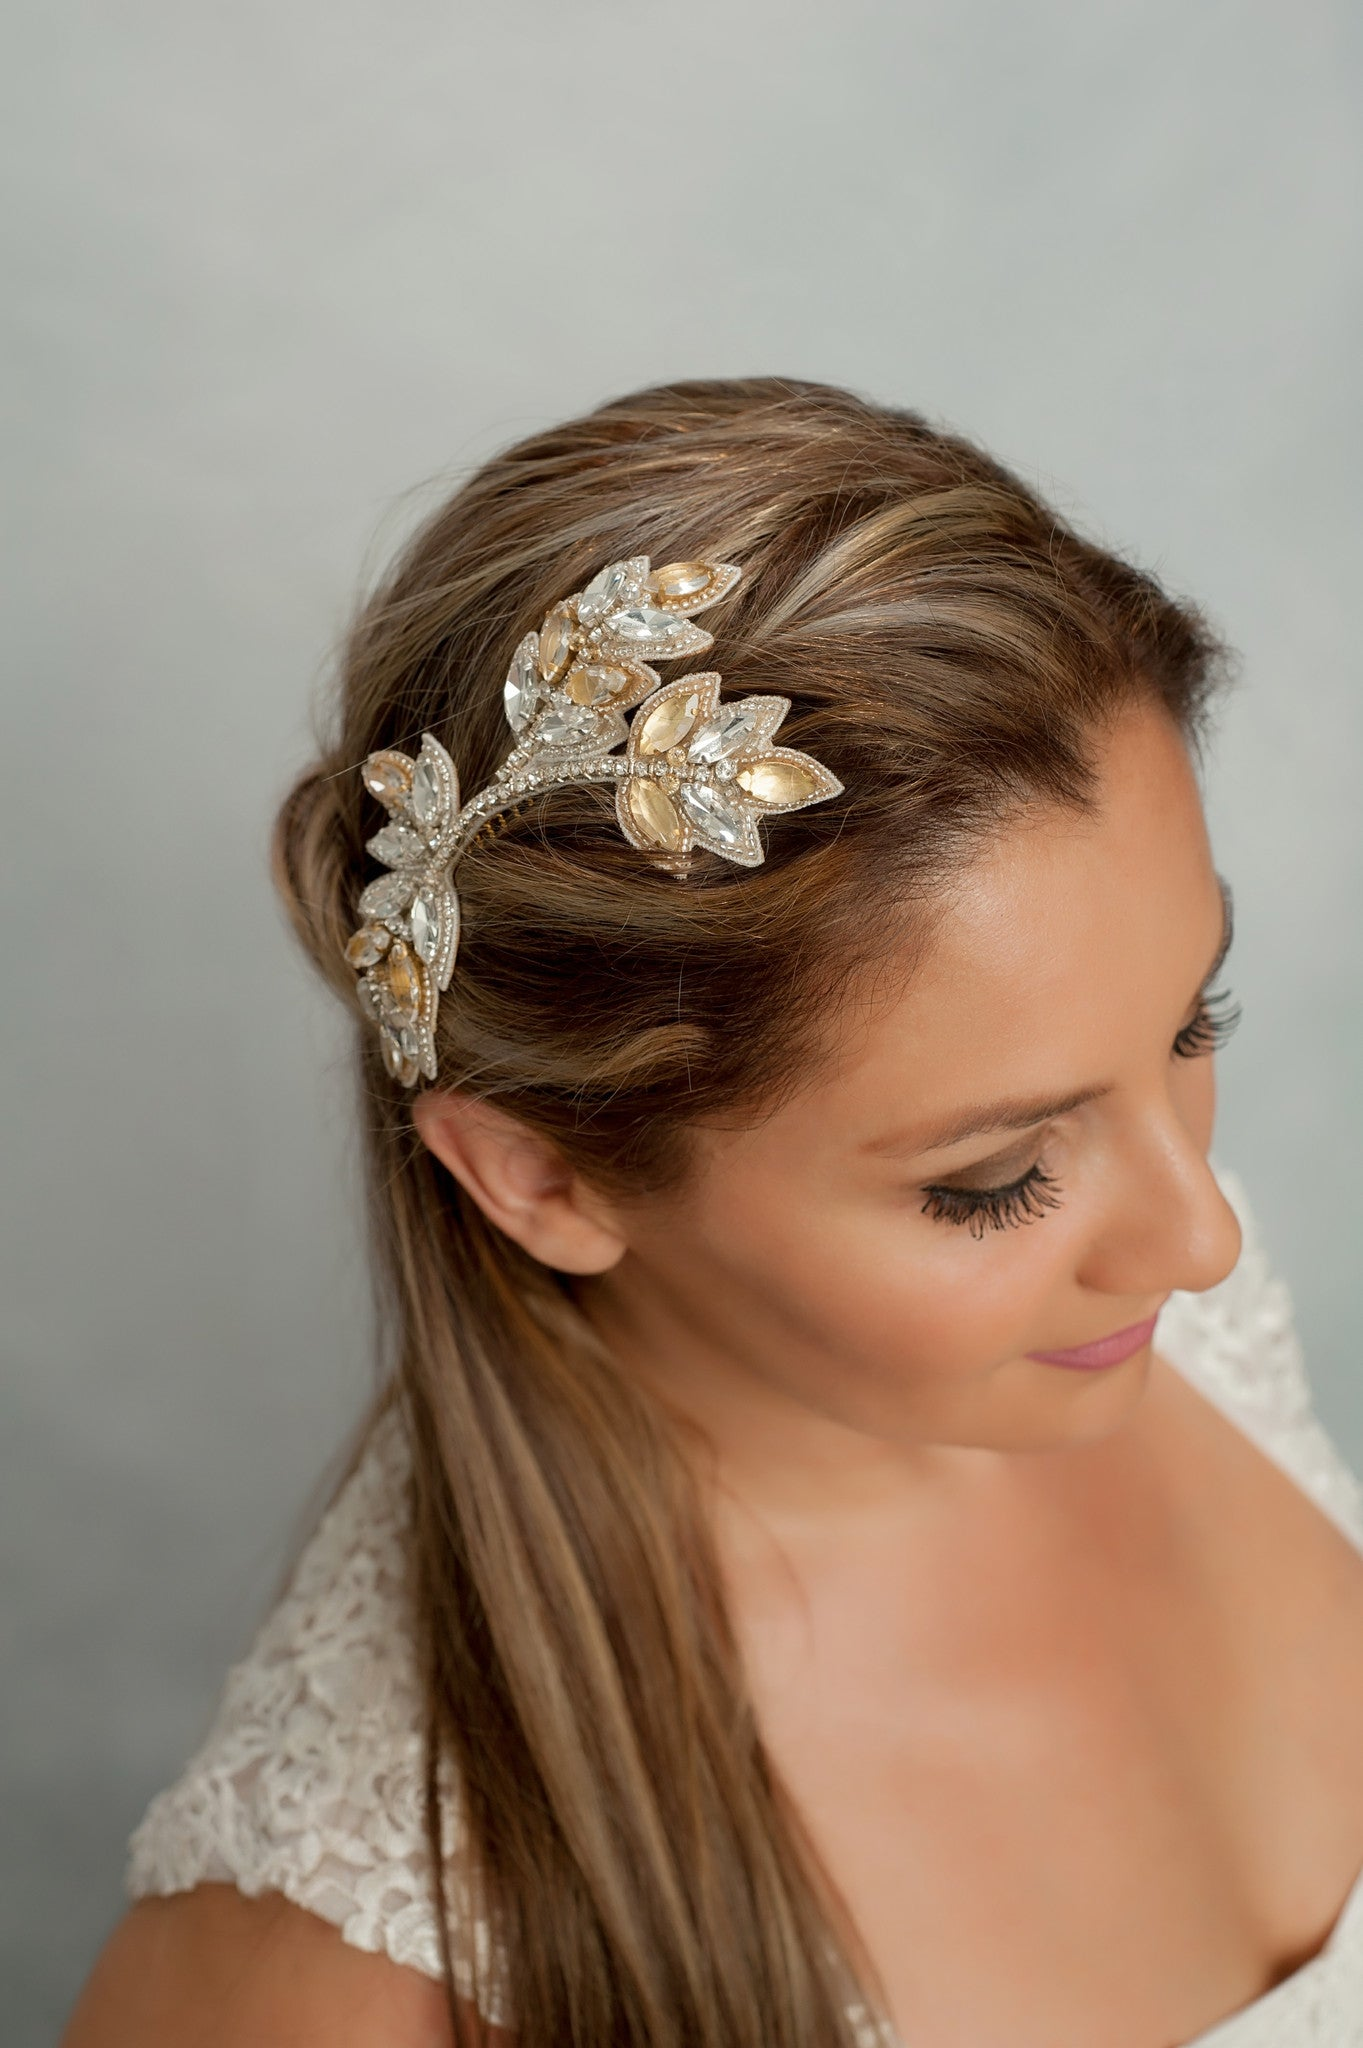 rhinestone branch headpiece HP170636